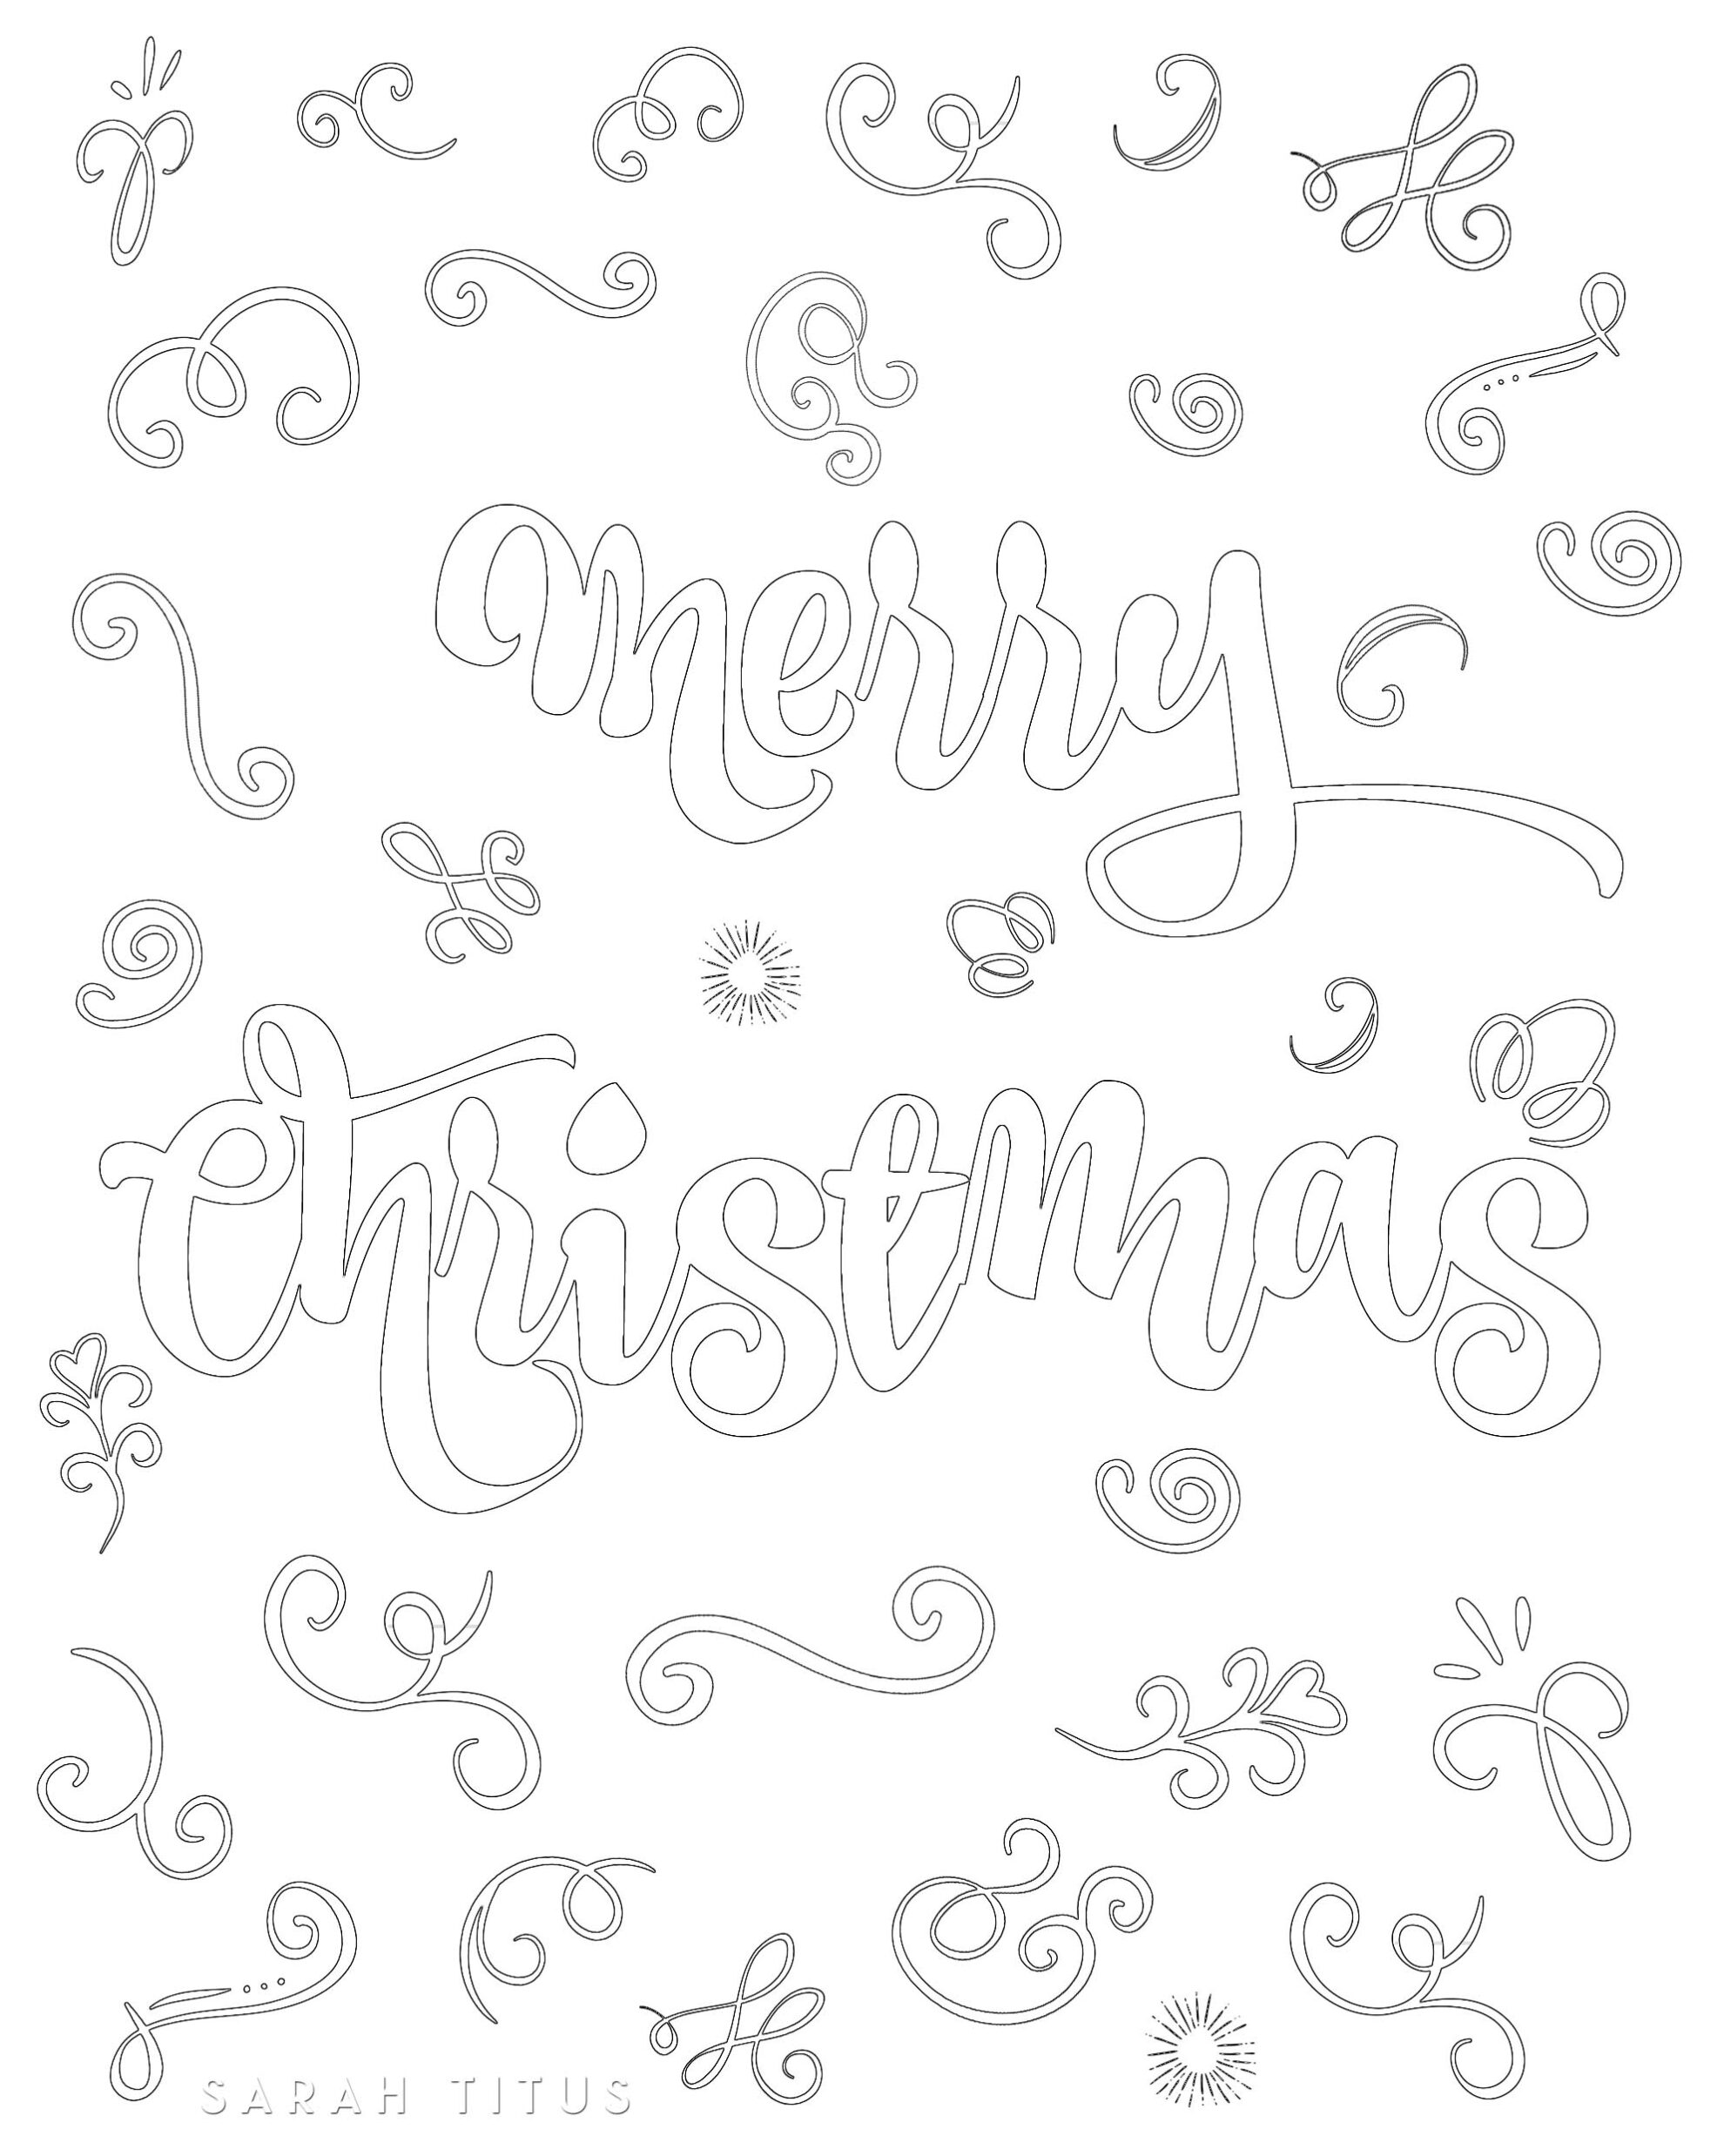 free printable christmas coloring sheets sarah titus from homeless to 8 figures free printable christmas coloring